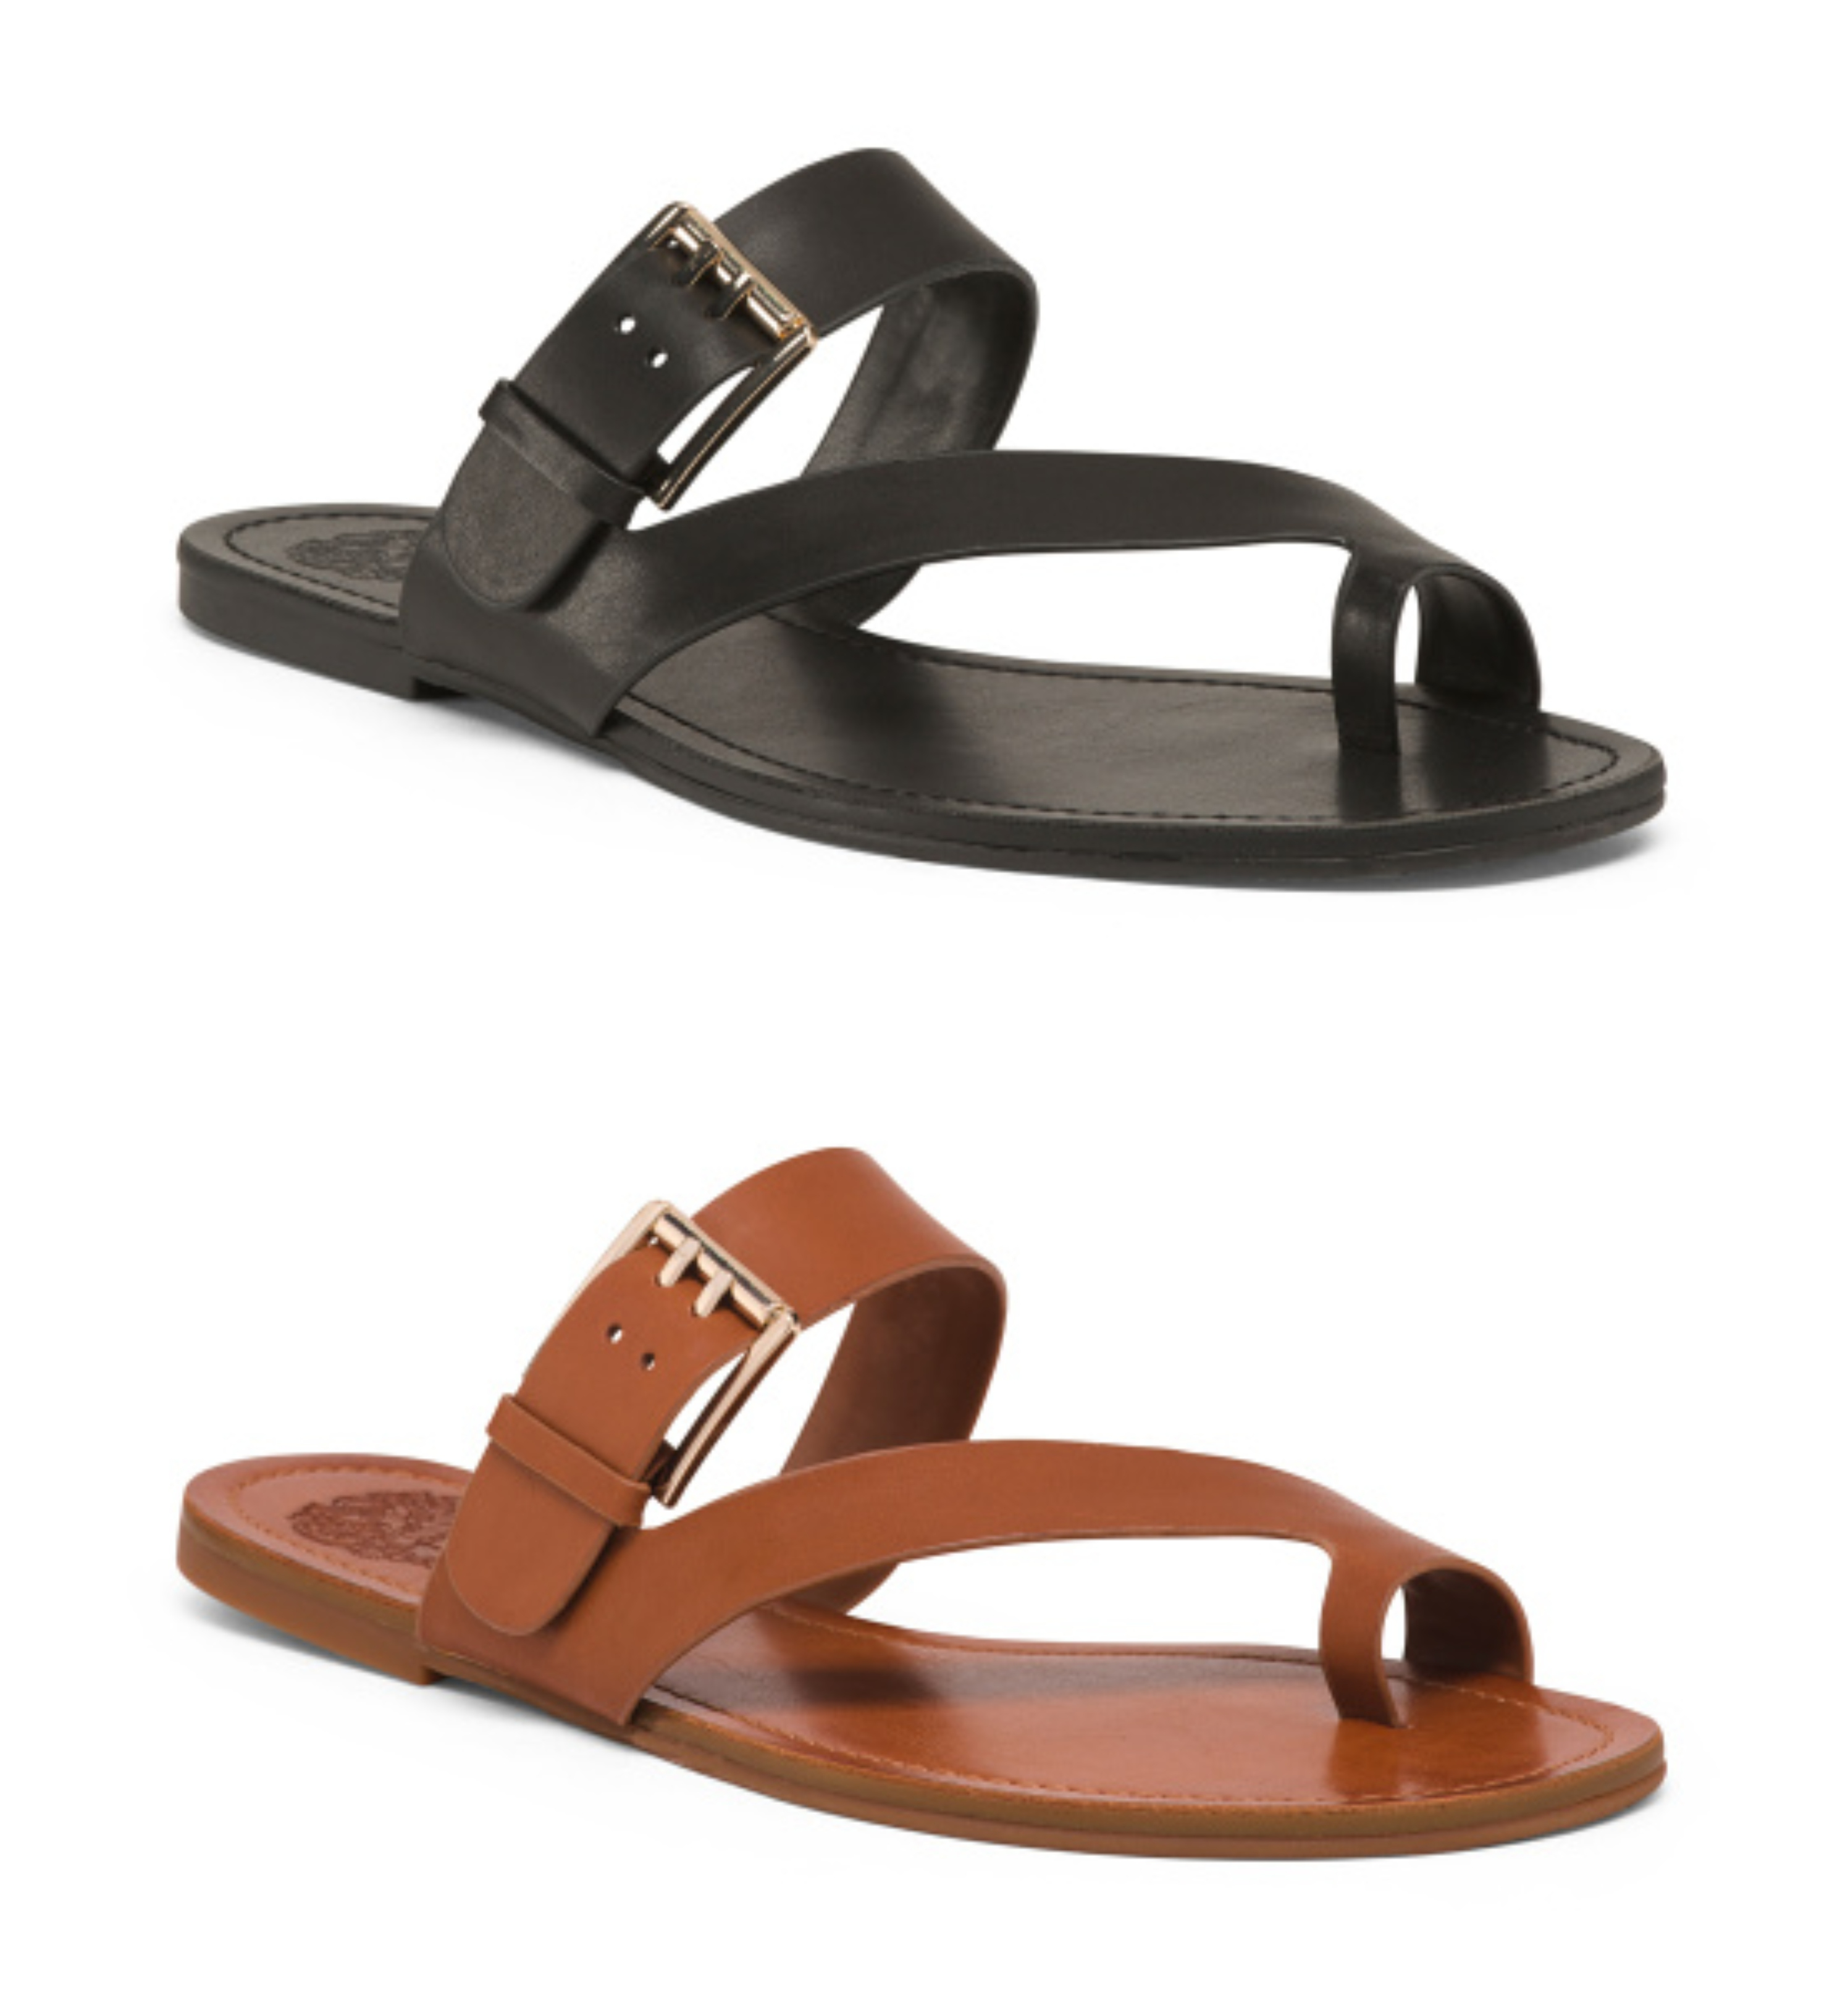 TJ Maxx: Vince Camuto Sandals – only